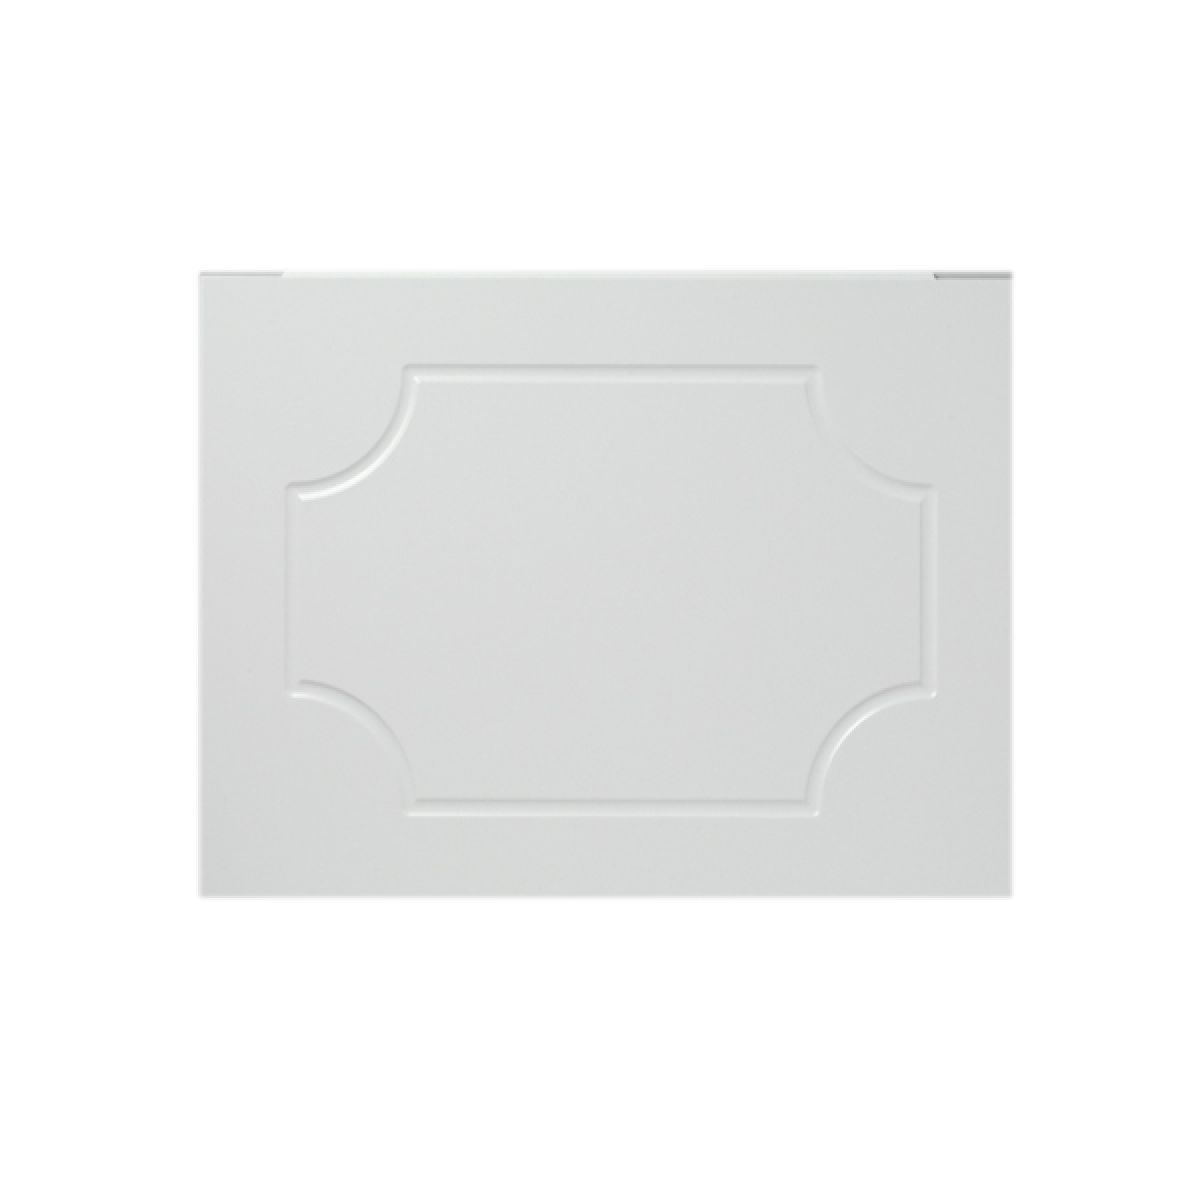 Tavistock Milton End Bath Panel 700mm in White